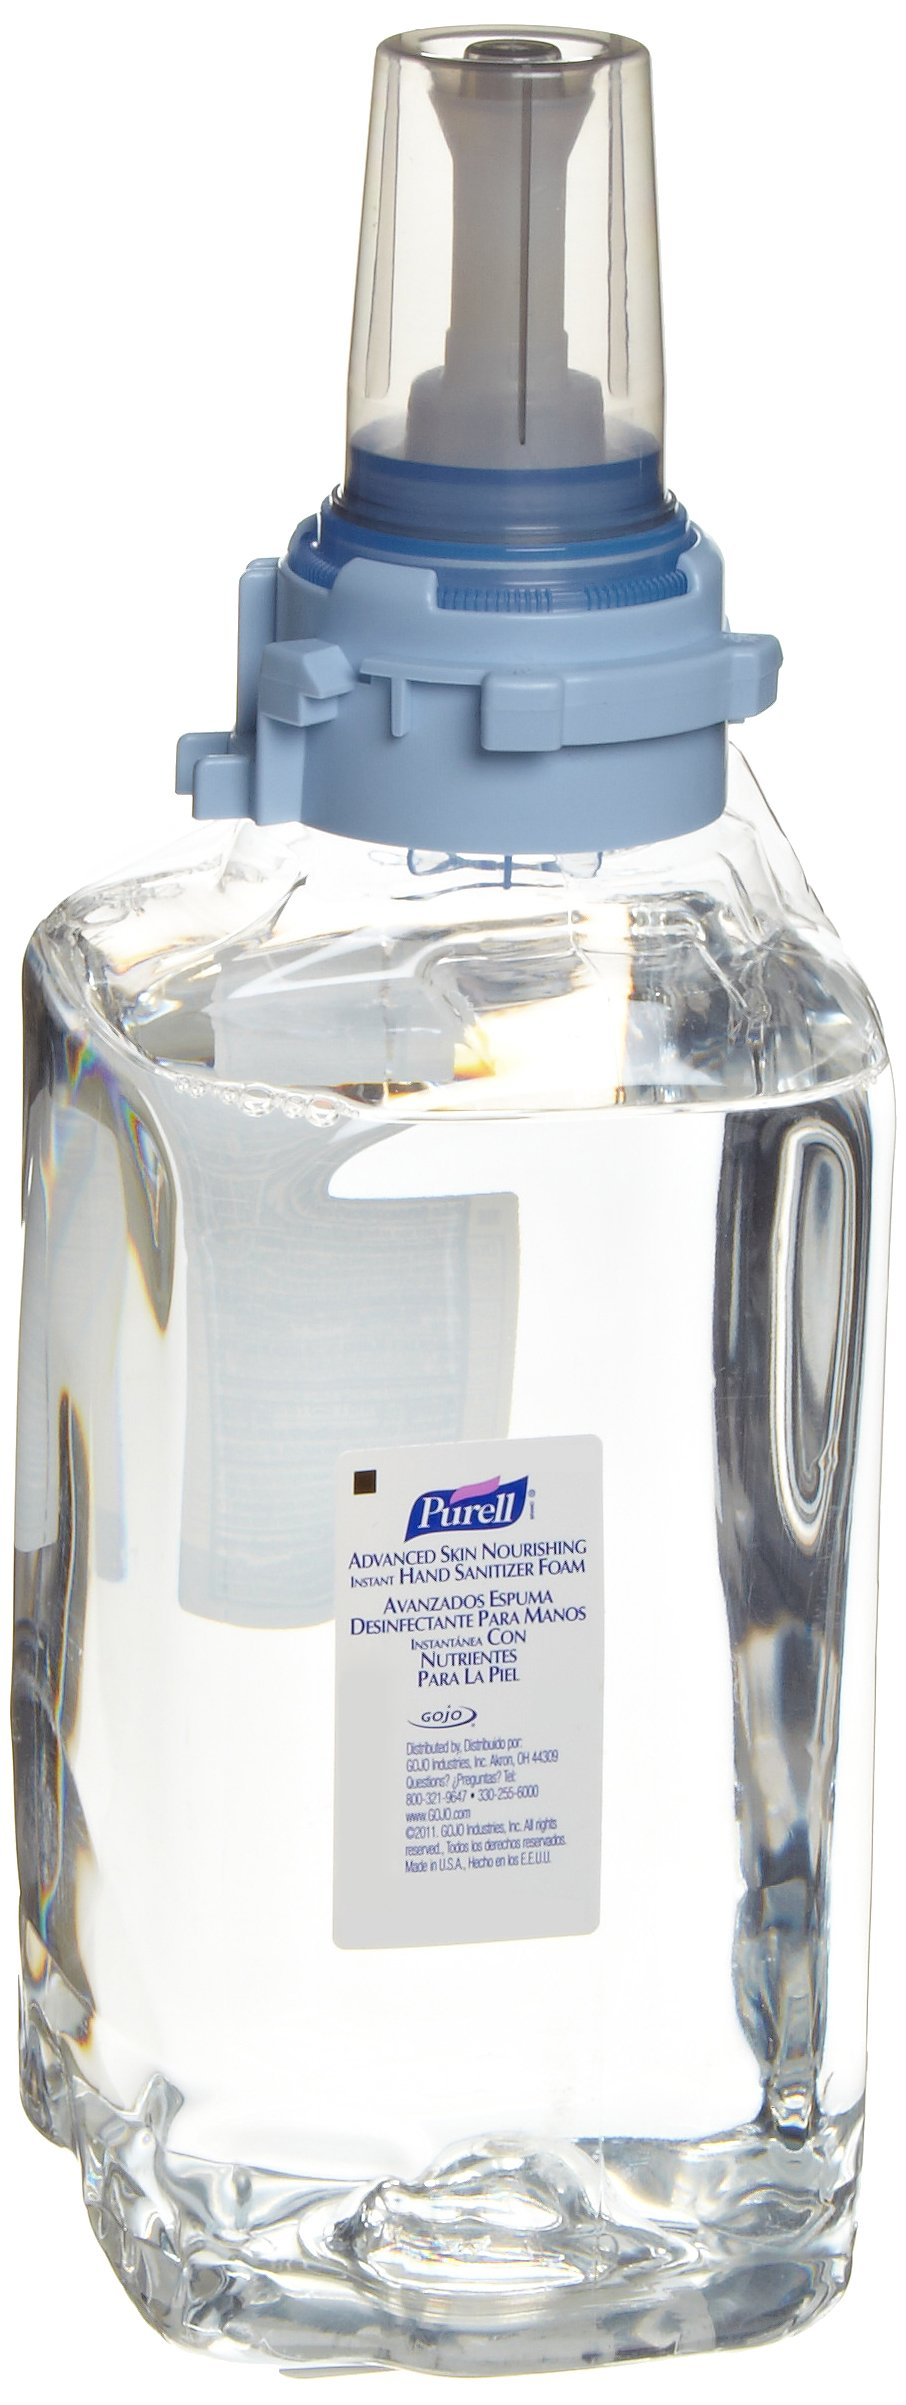 Purell 8806-03 Clear Advanced Skin Nourishing Instant Hand Sanitizer Foam, 1200mL Refill (Case of 3) by Purell